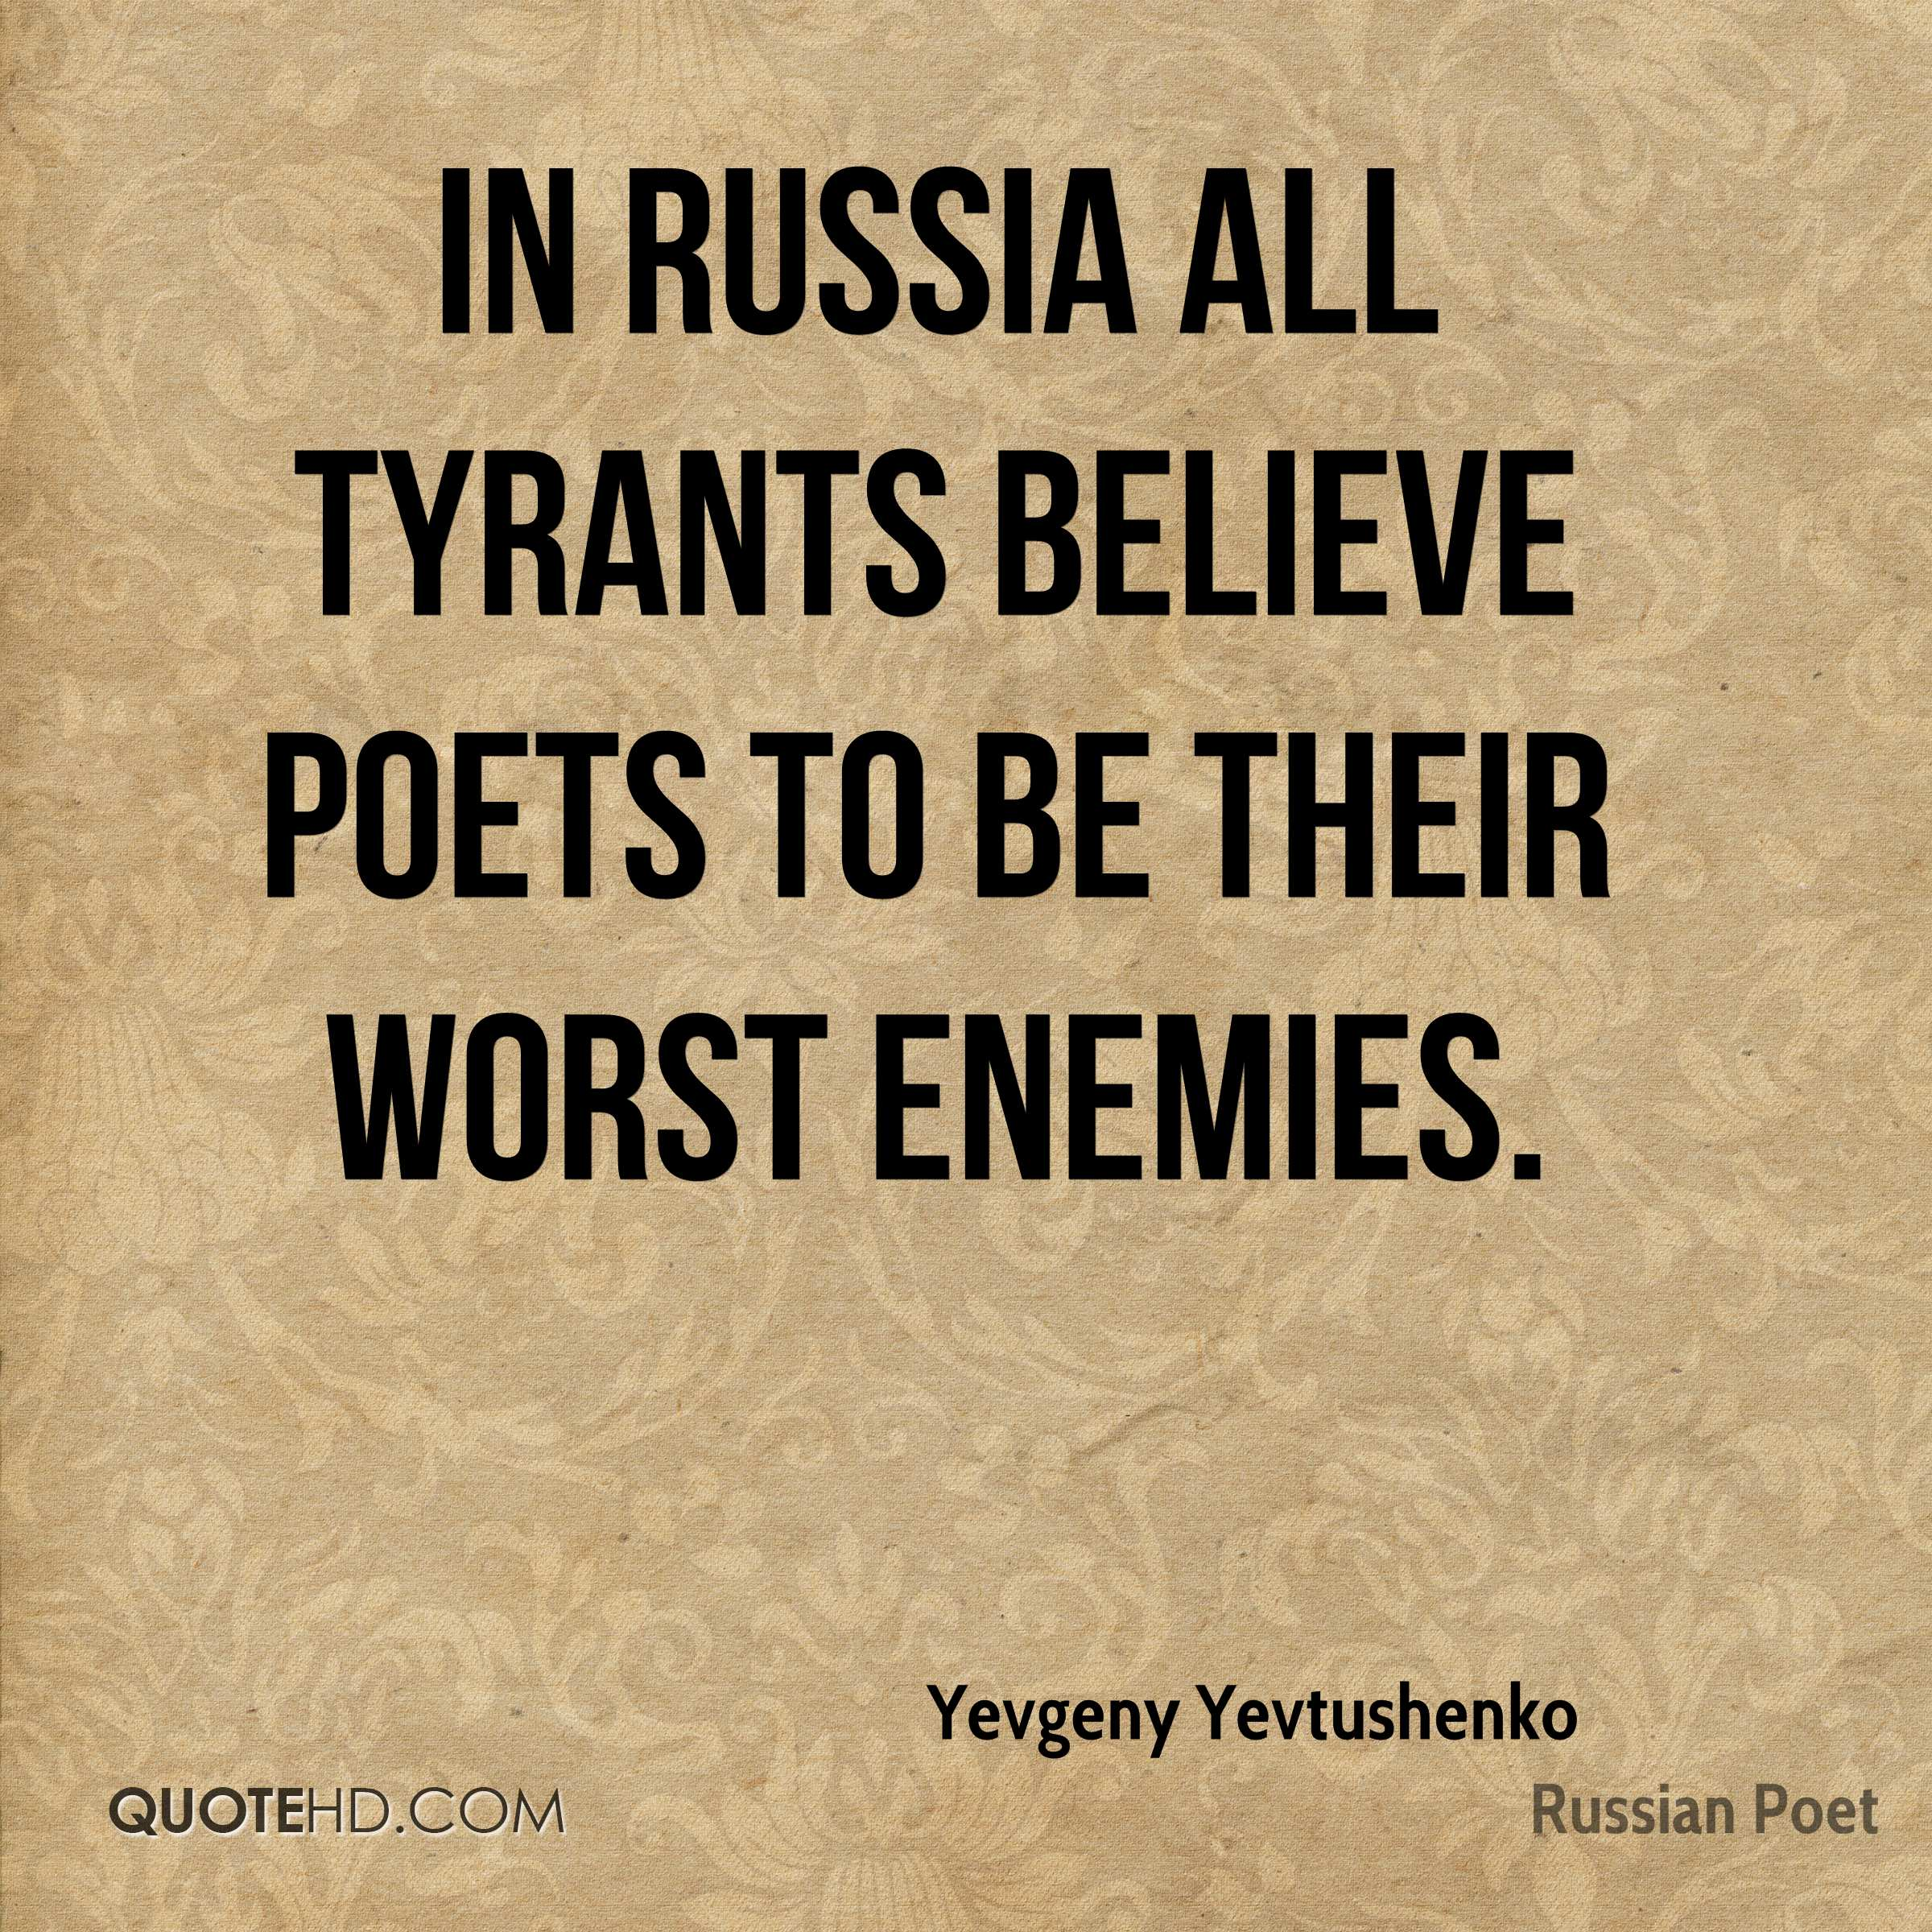 Percy bysshe shelley quotes quotesgram - In Russia All Tyrants Believe Poets To Be Their Worst Enemies Yevgeny Yevtushenko